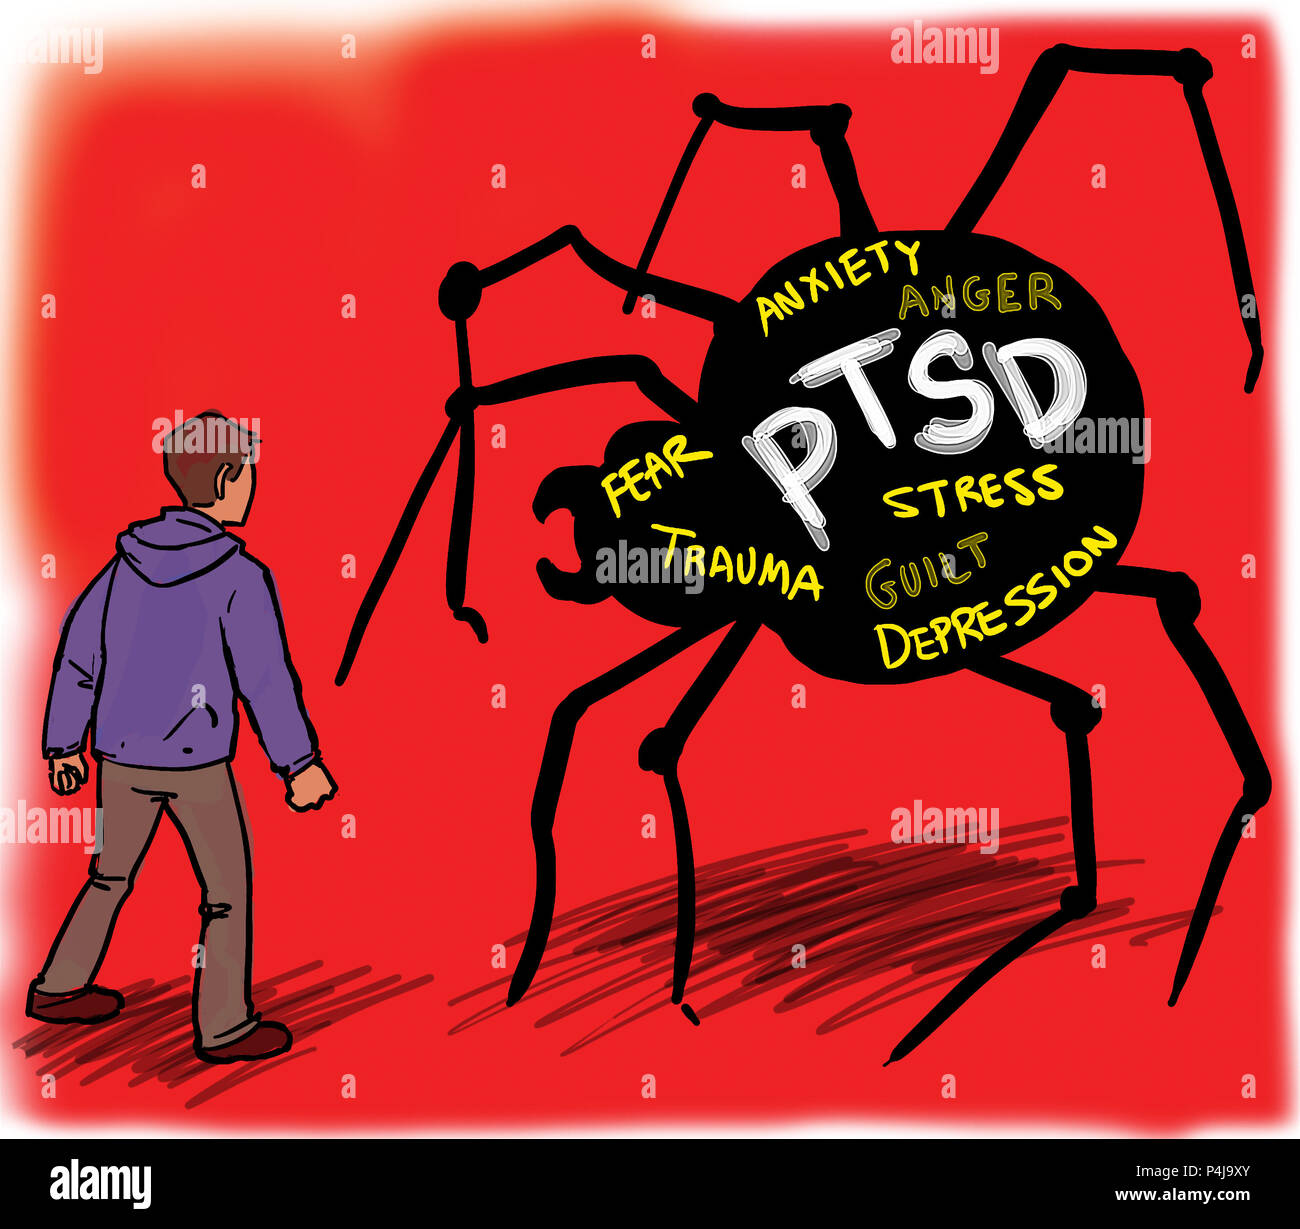 Man suffering, dealing with PTSD (Post-Traumatic Stress Disorder). - Stock Image